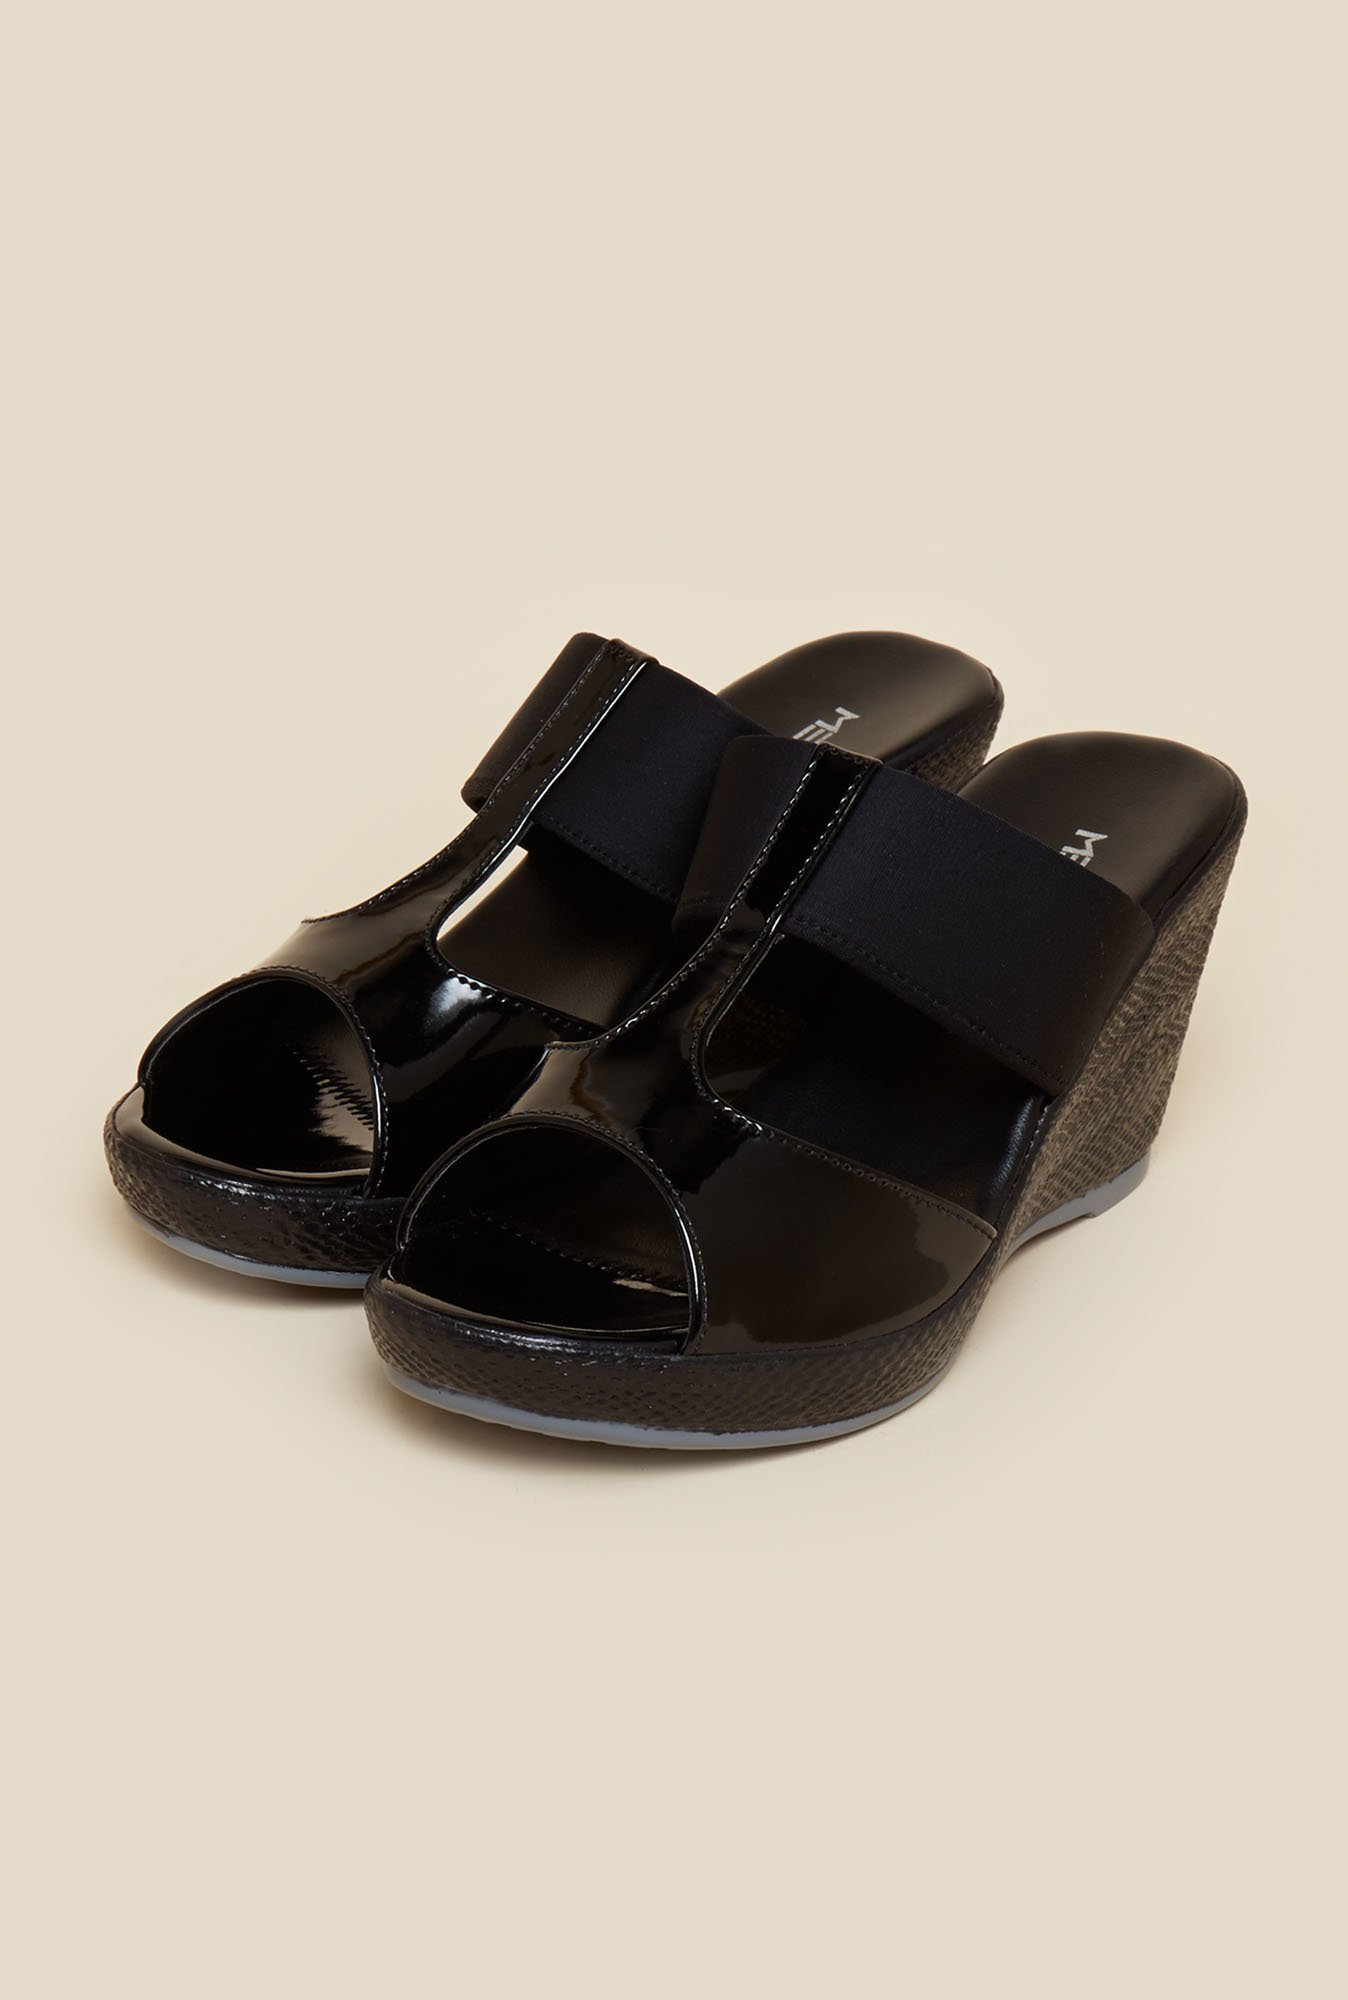 Metro Black Faux Leather Wedges